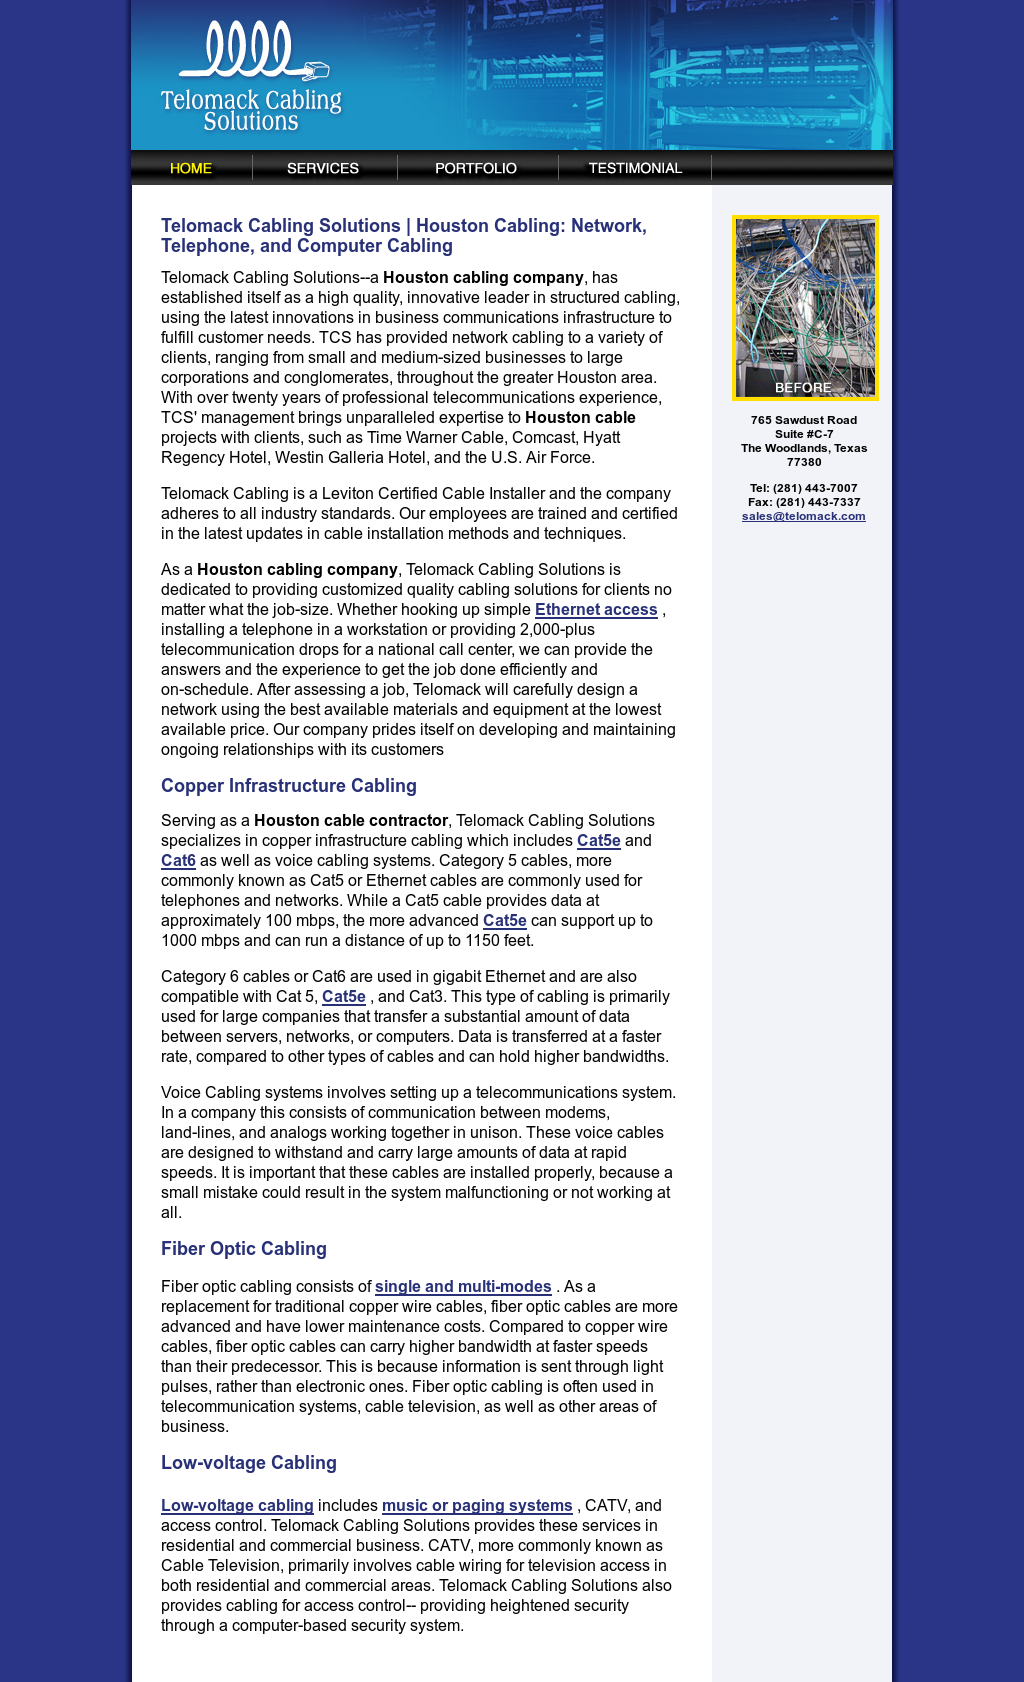 Telomack Cabling Solutions Competitors, Revenue and